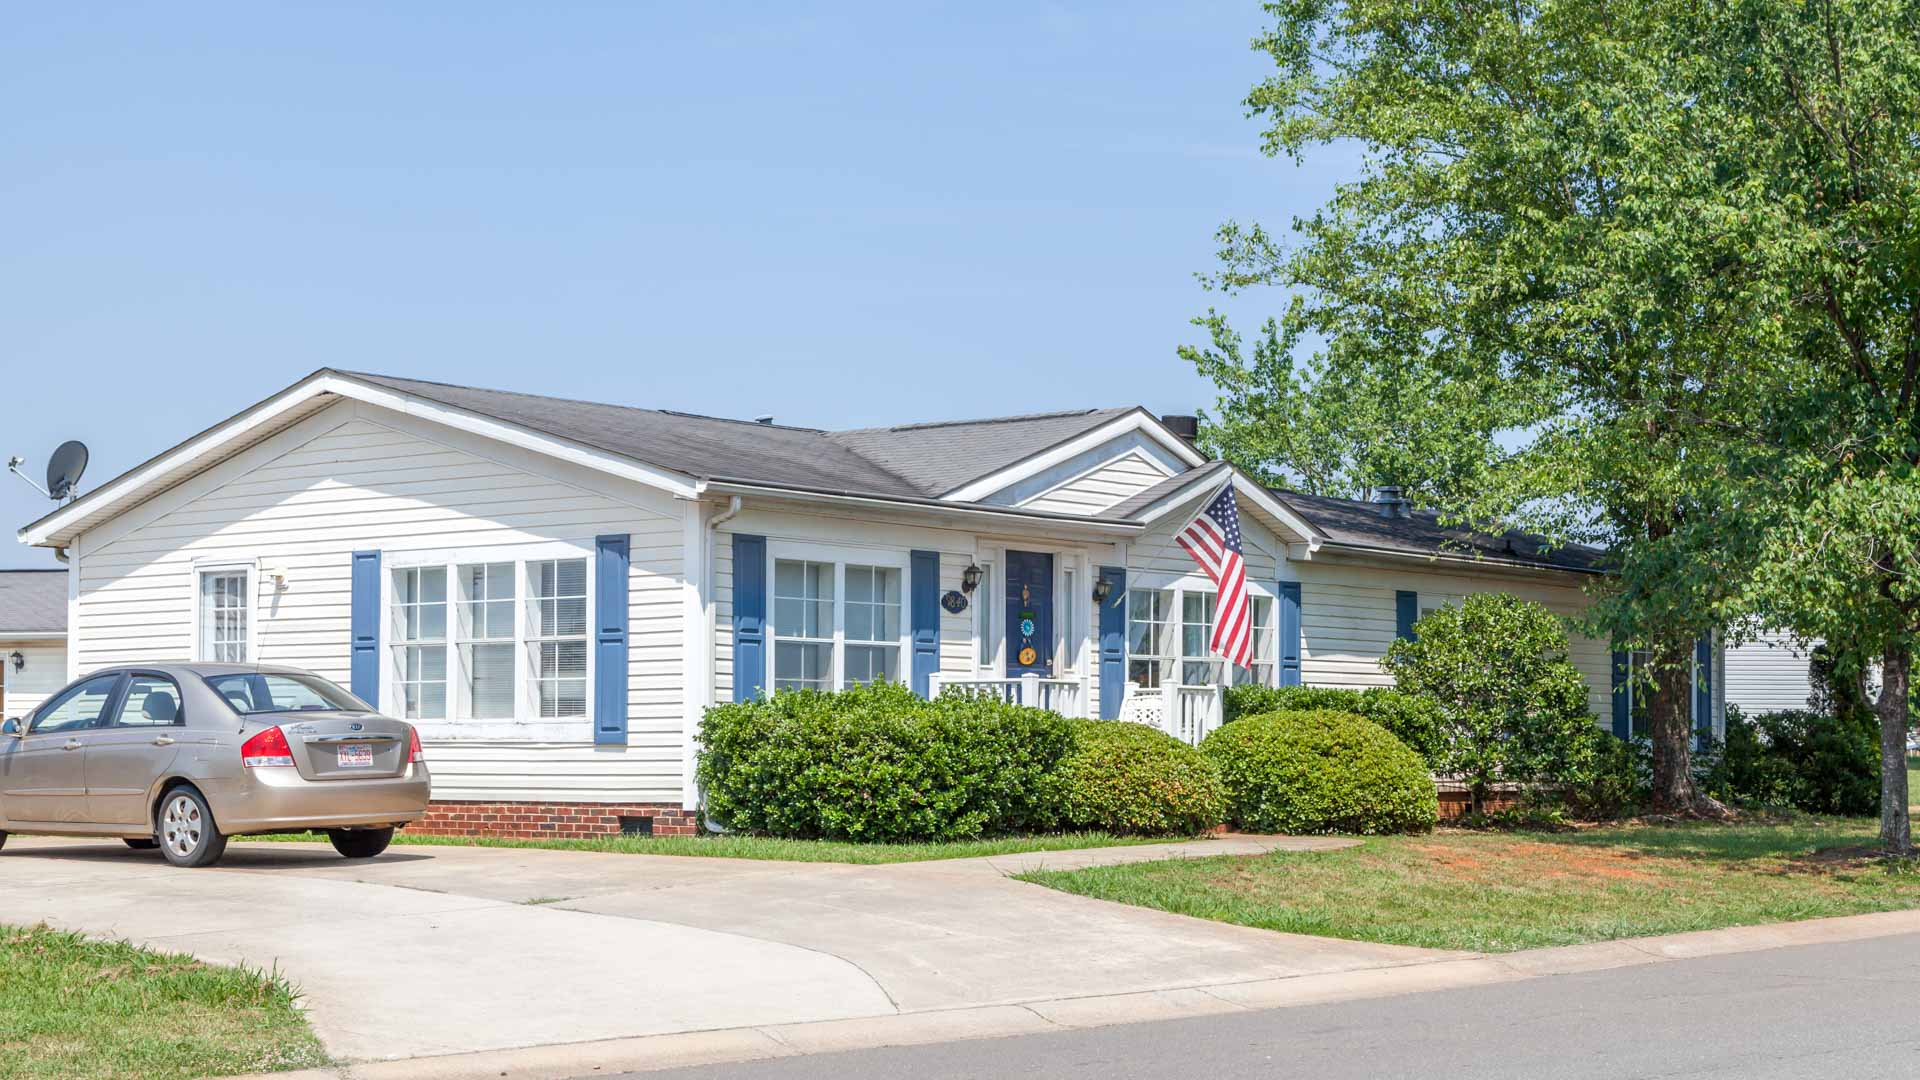 Meadowbrook Manufactured Homes Community Blue Door and US Flag in Charlotte, NC